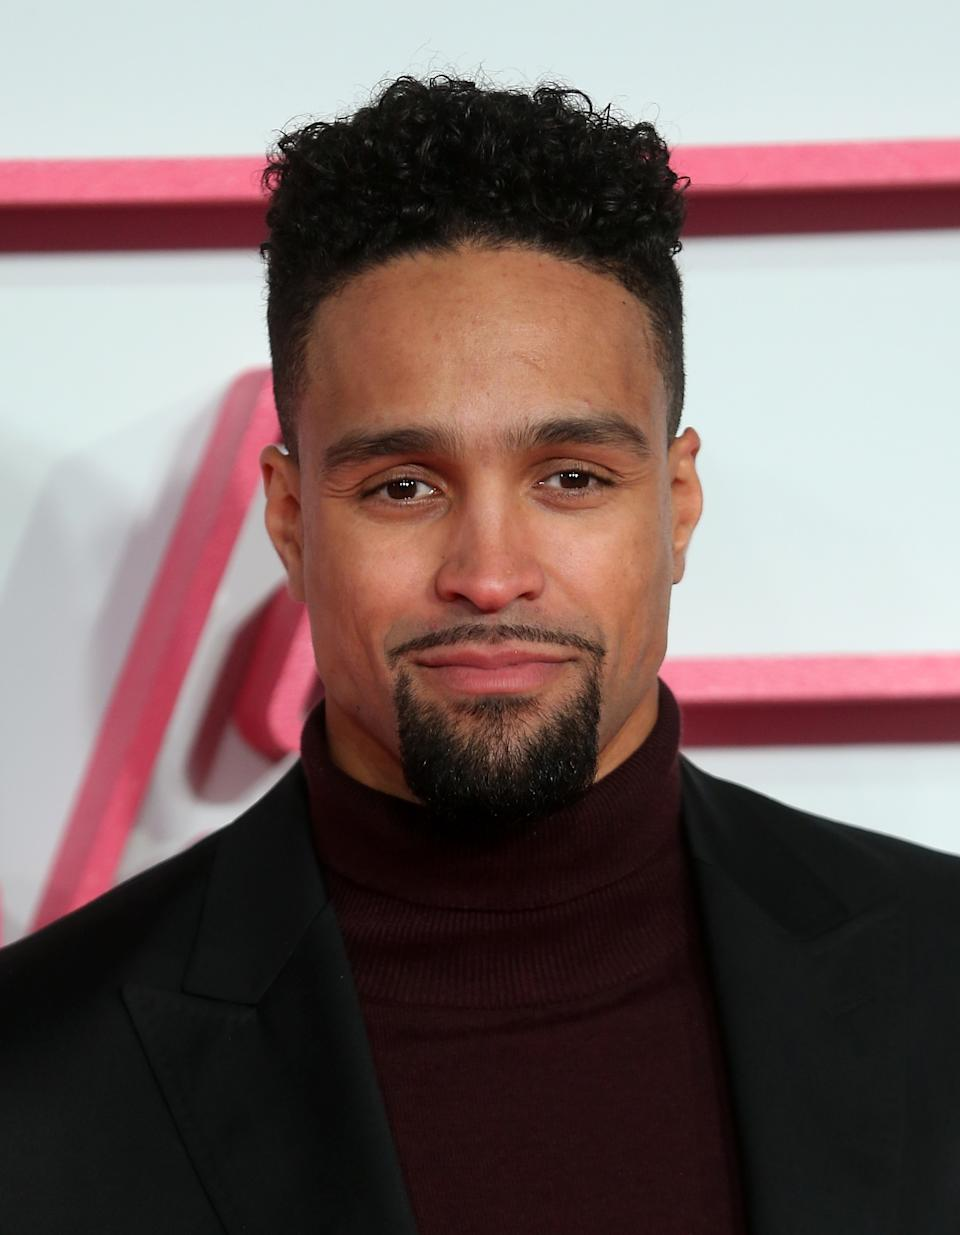 LONDON, ENGLAND - NOVEMBER 24:  Ashley Banjo attends the ITV Gala at London Palladium on November 24, 2016 in London, England.  (Photo by Danny Martindale/Getty Images)